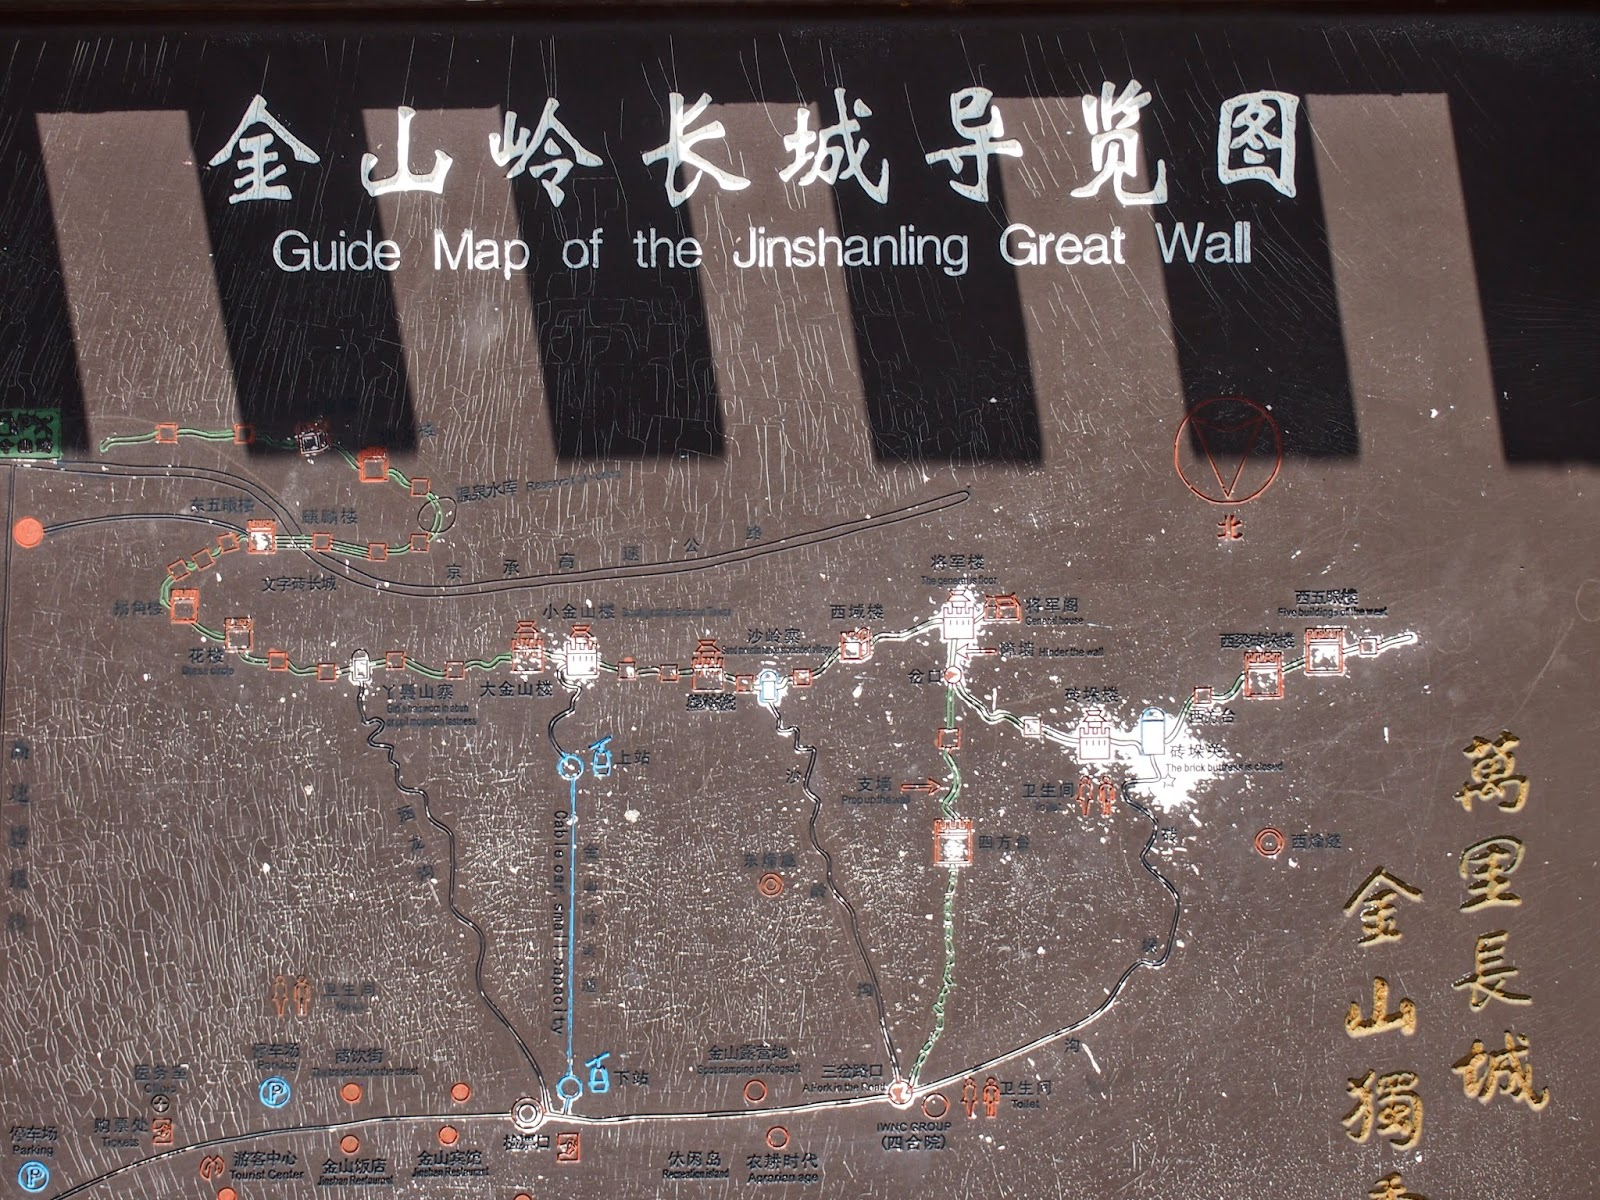 a map to the Jinshaling Great Wall